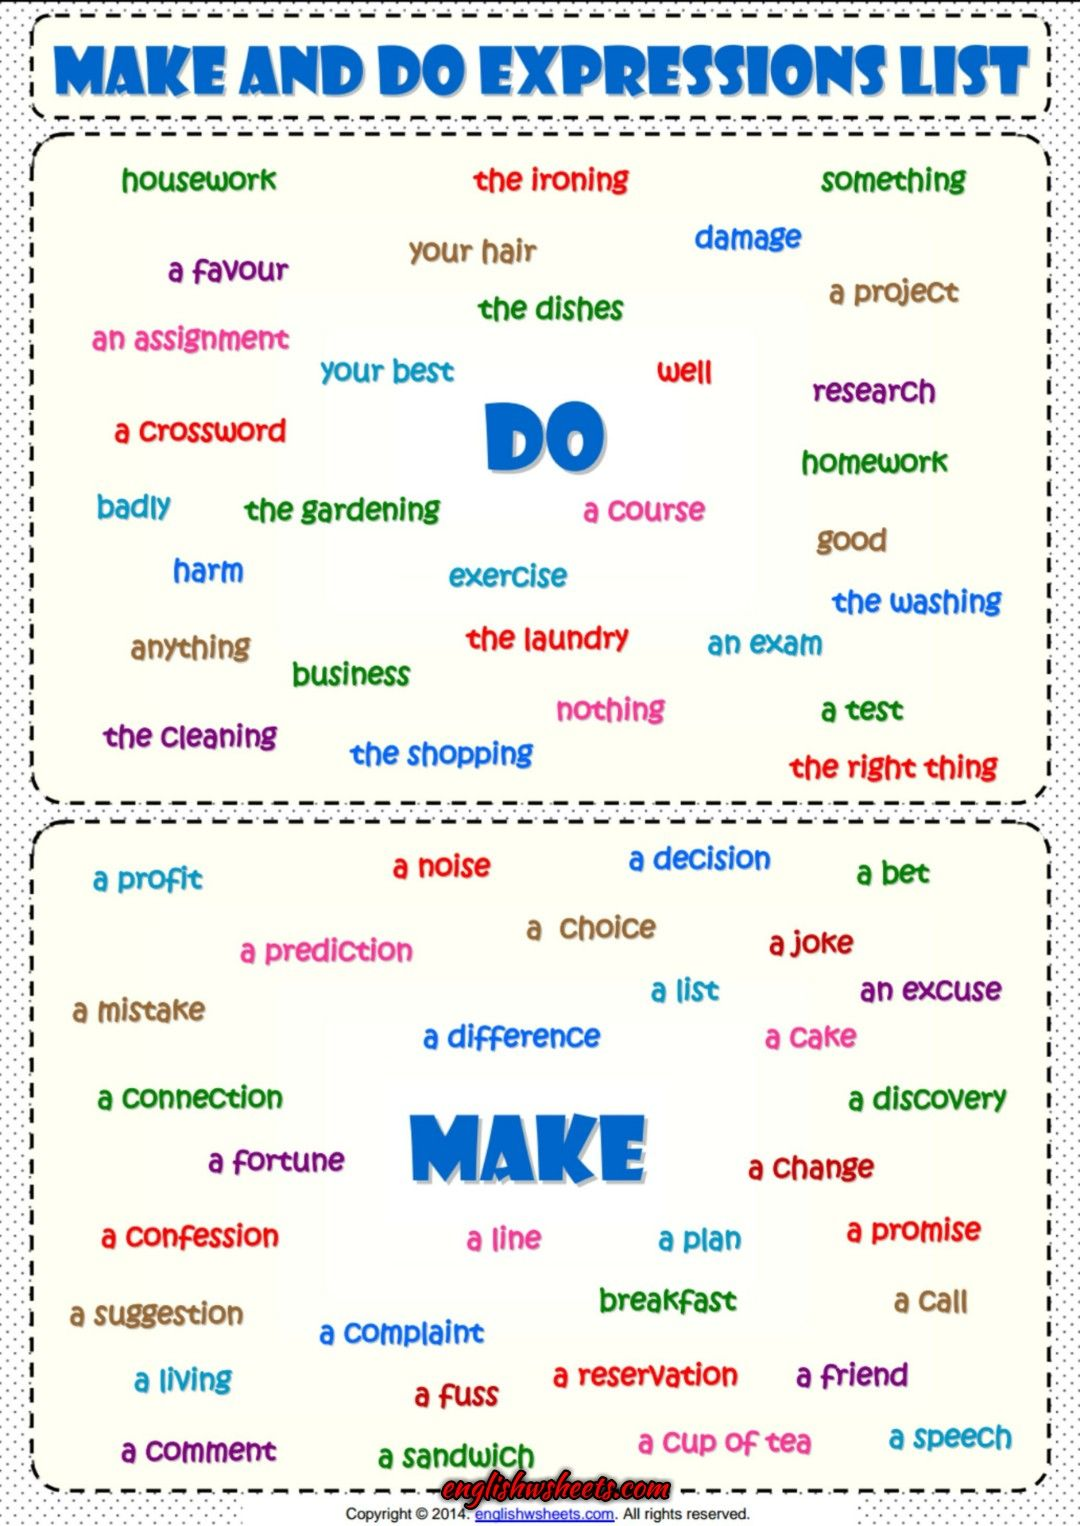 Make And Do Expressions List Esl Grammar Handout With